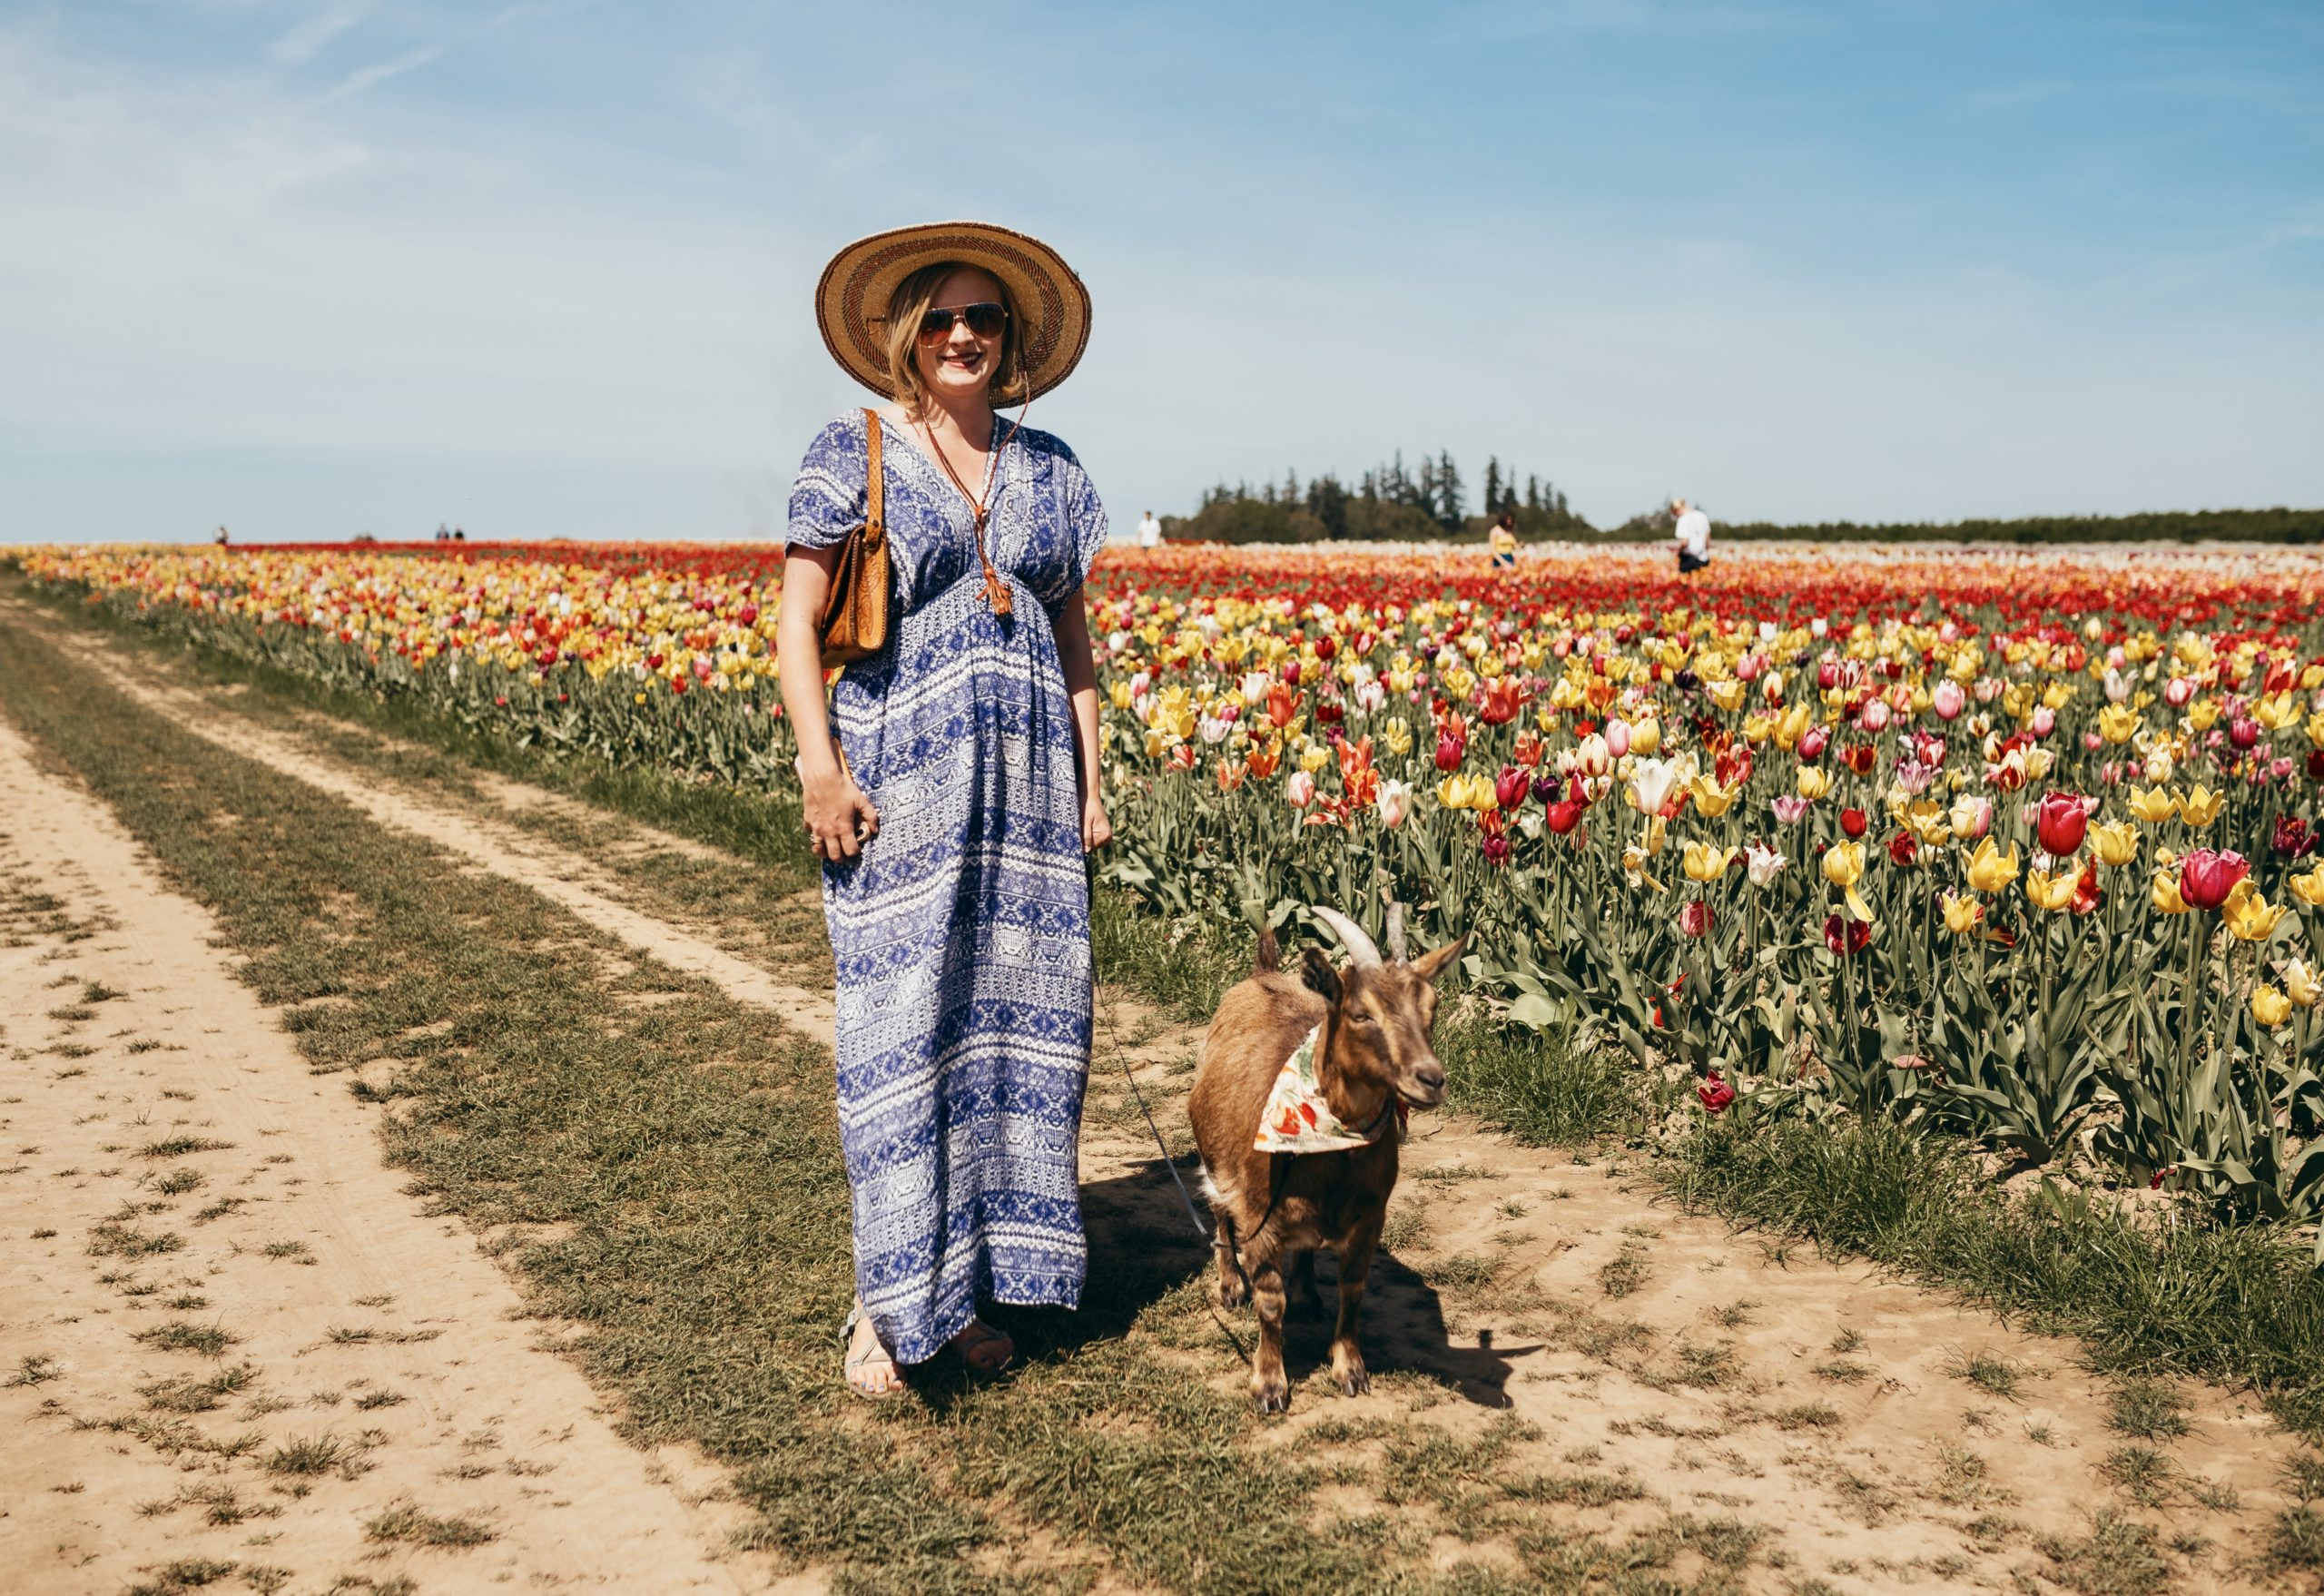 Woman in dress standing in tulip field with goat